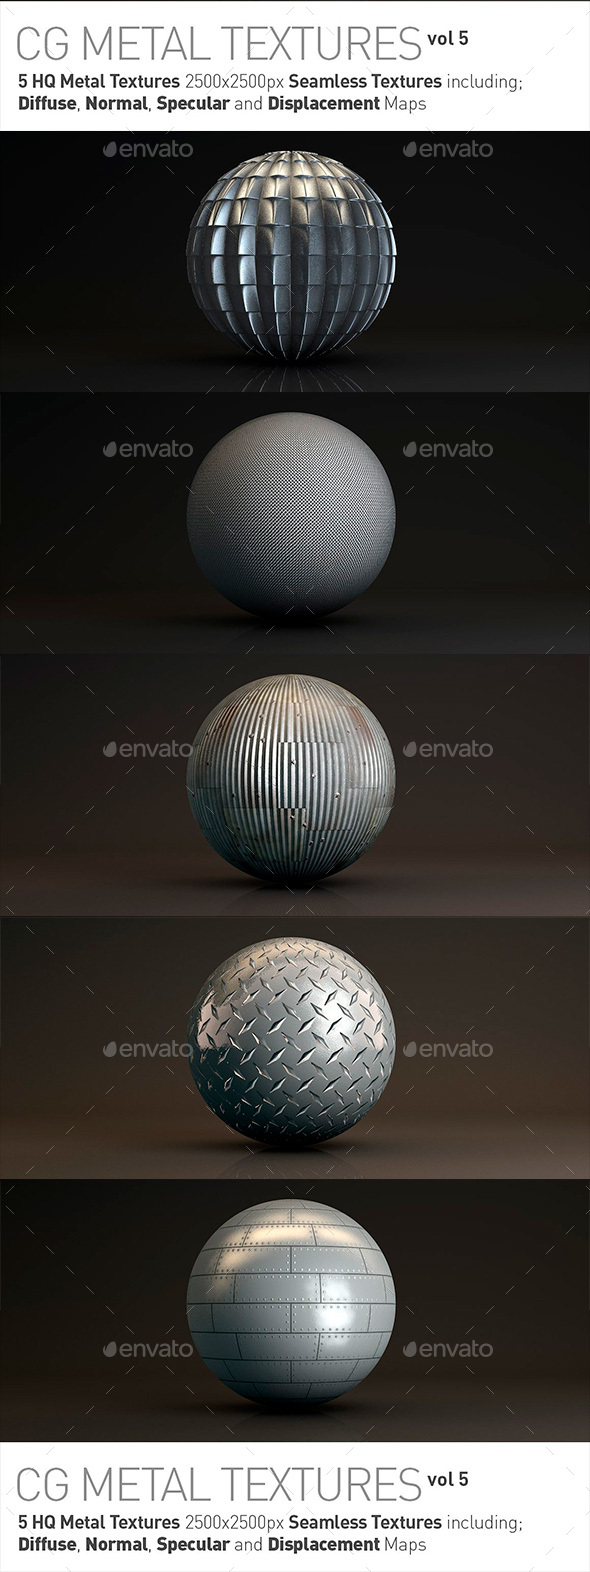 5 Metal Textures for CG Artists Vol 5 - Metal Textures